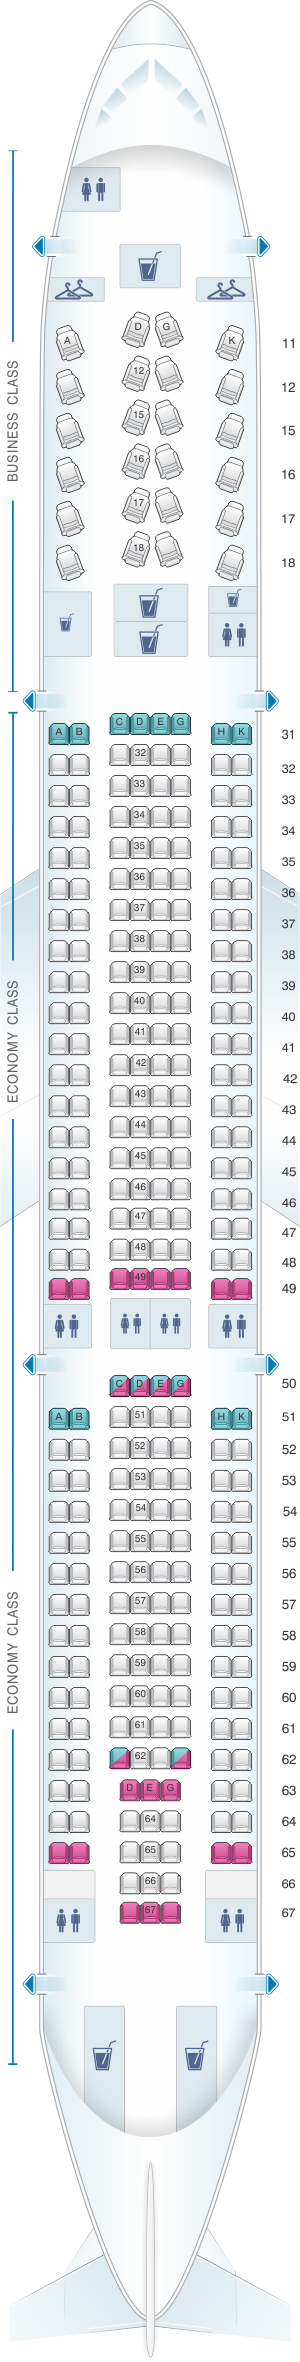 Seat map for Hainan Airlines Airbus A330 300 config.2